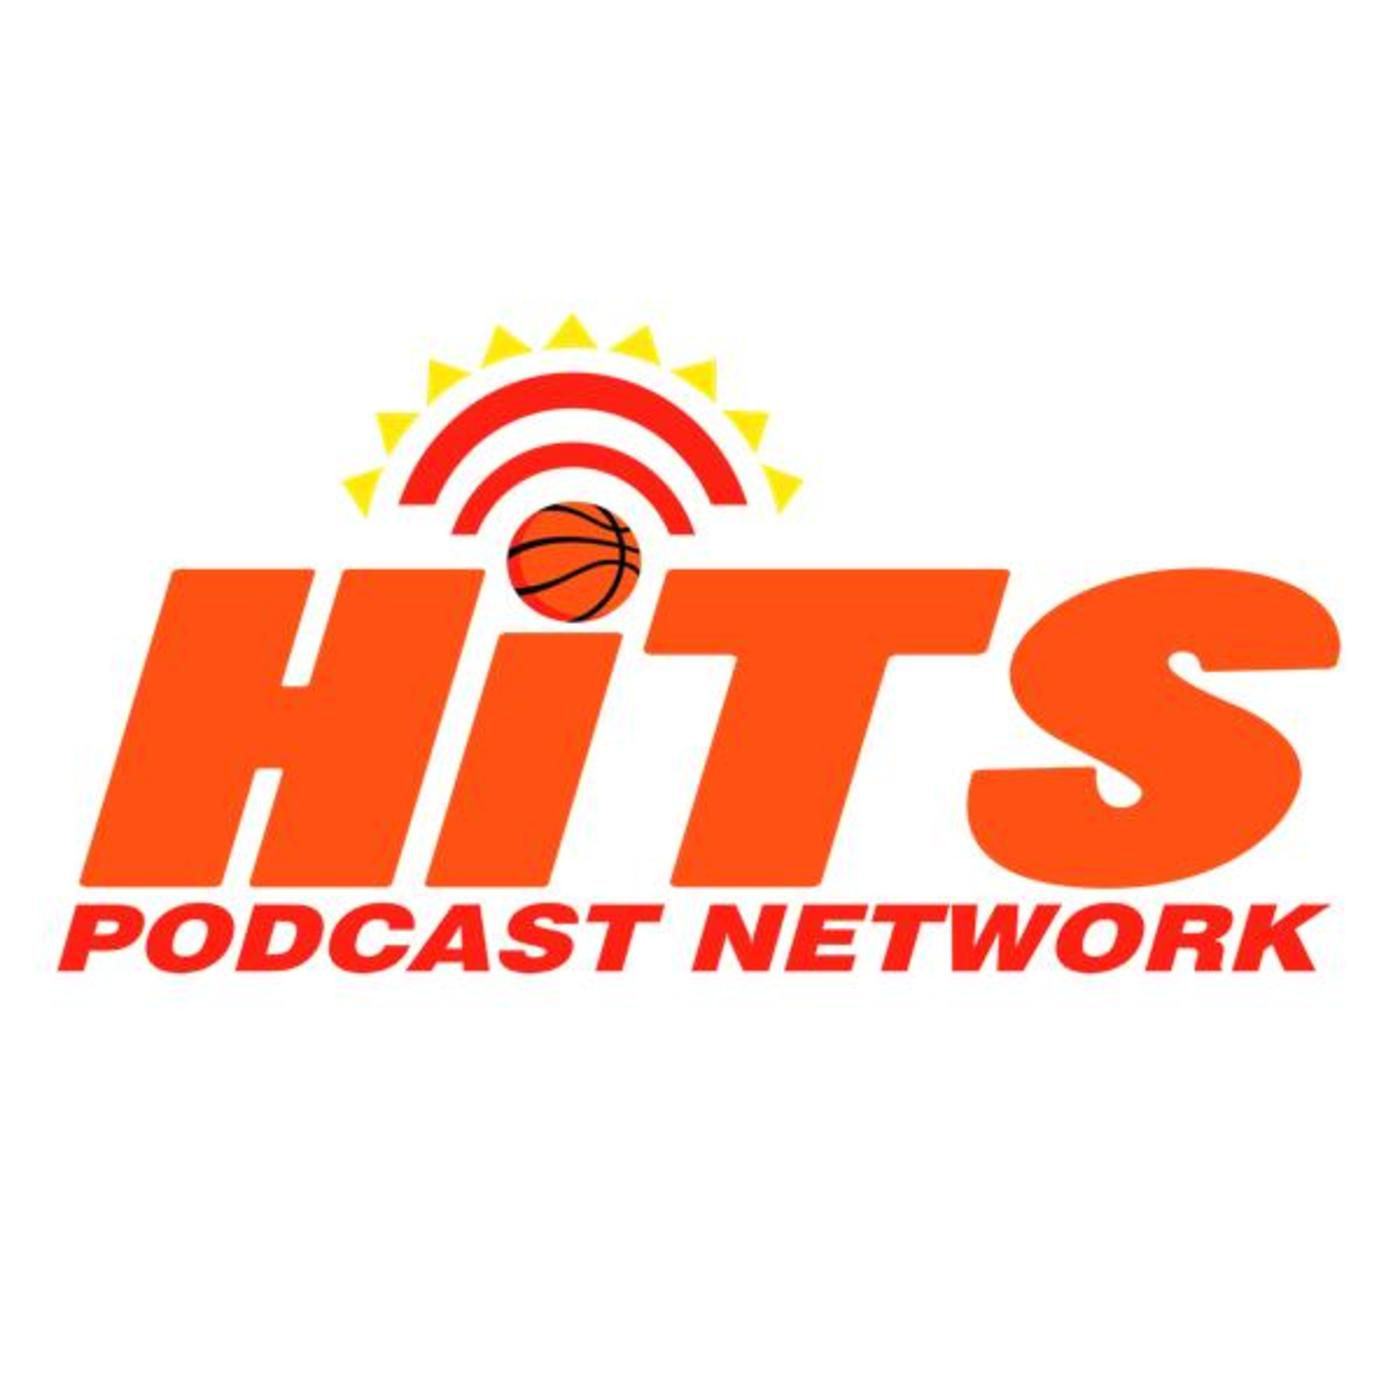 The HITS Podcast Network